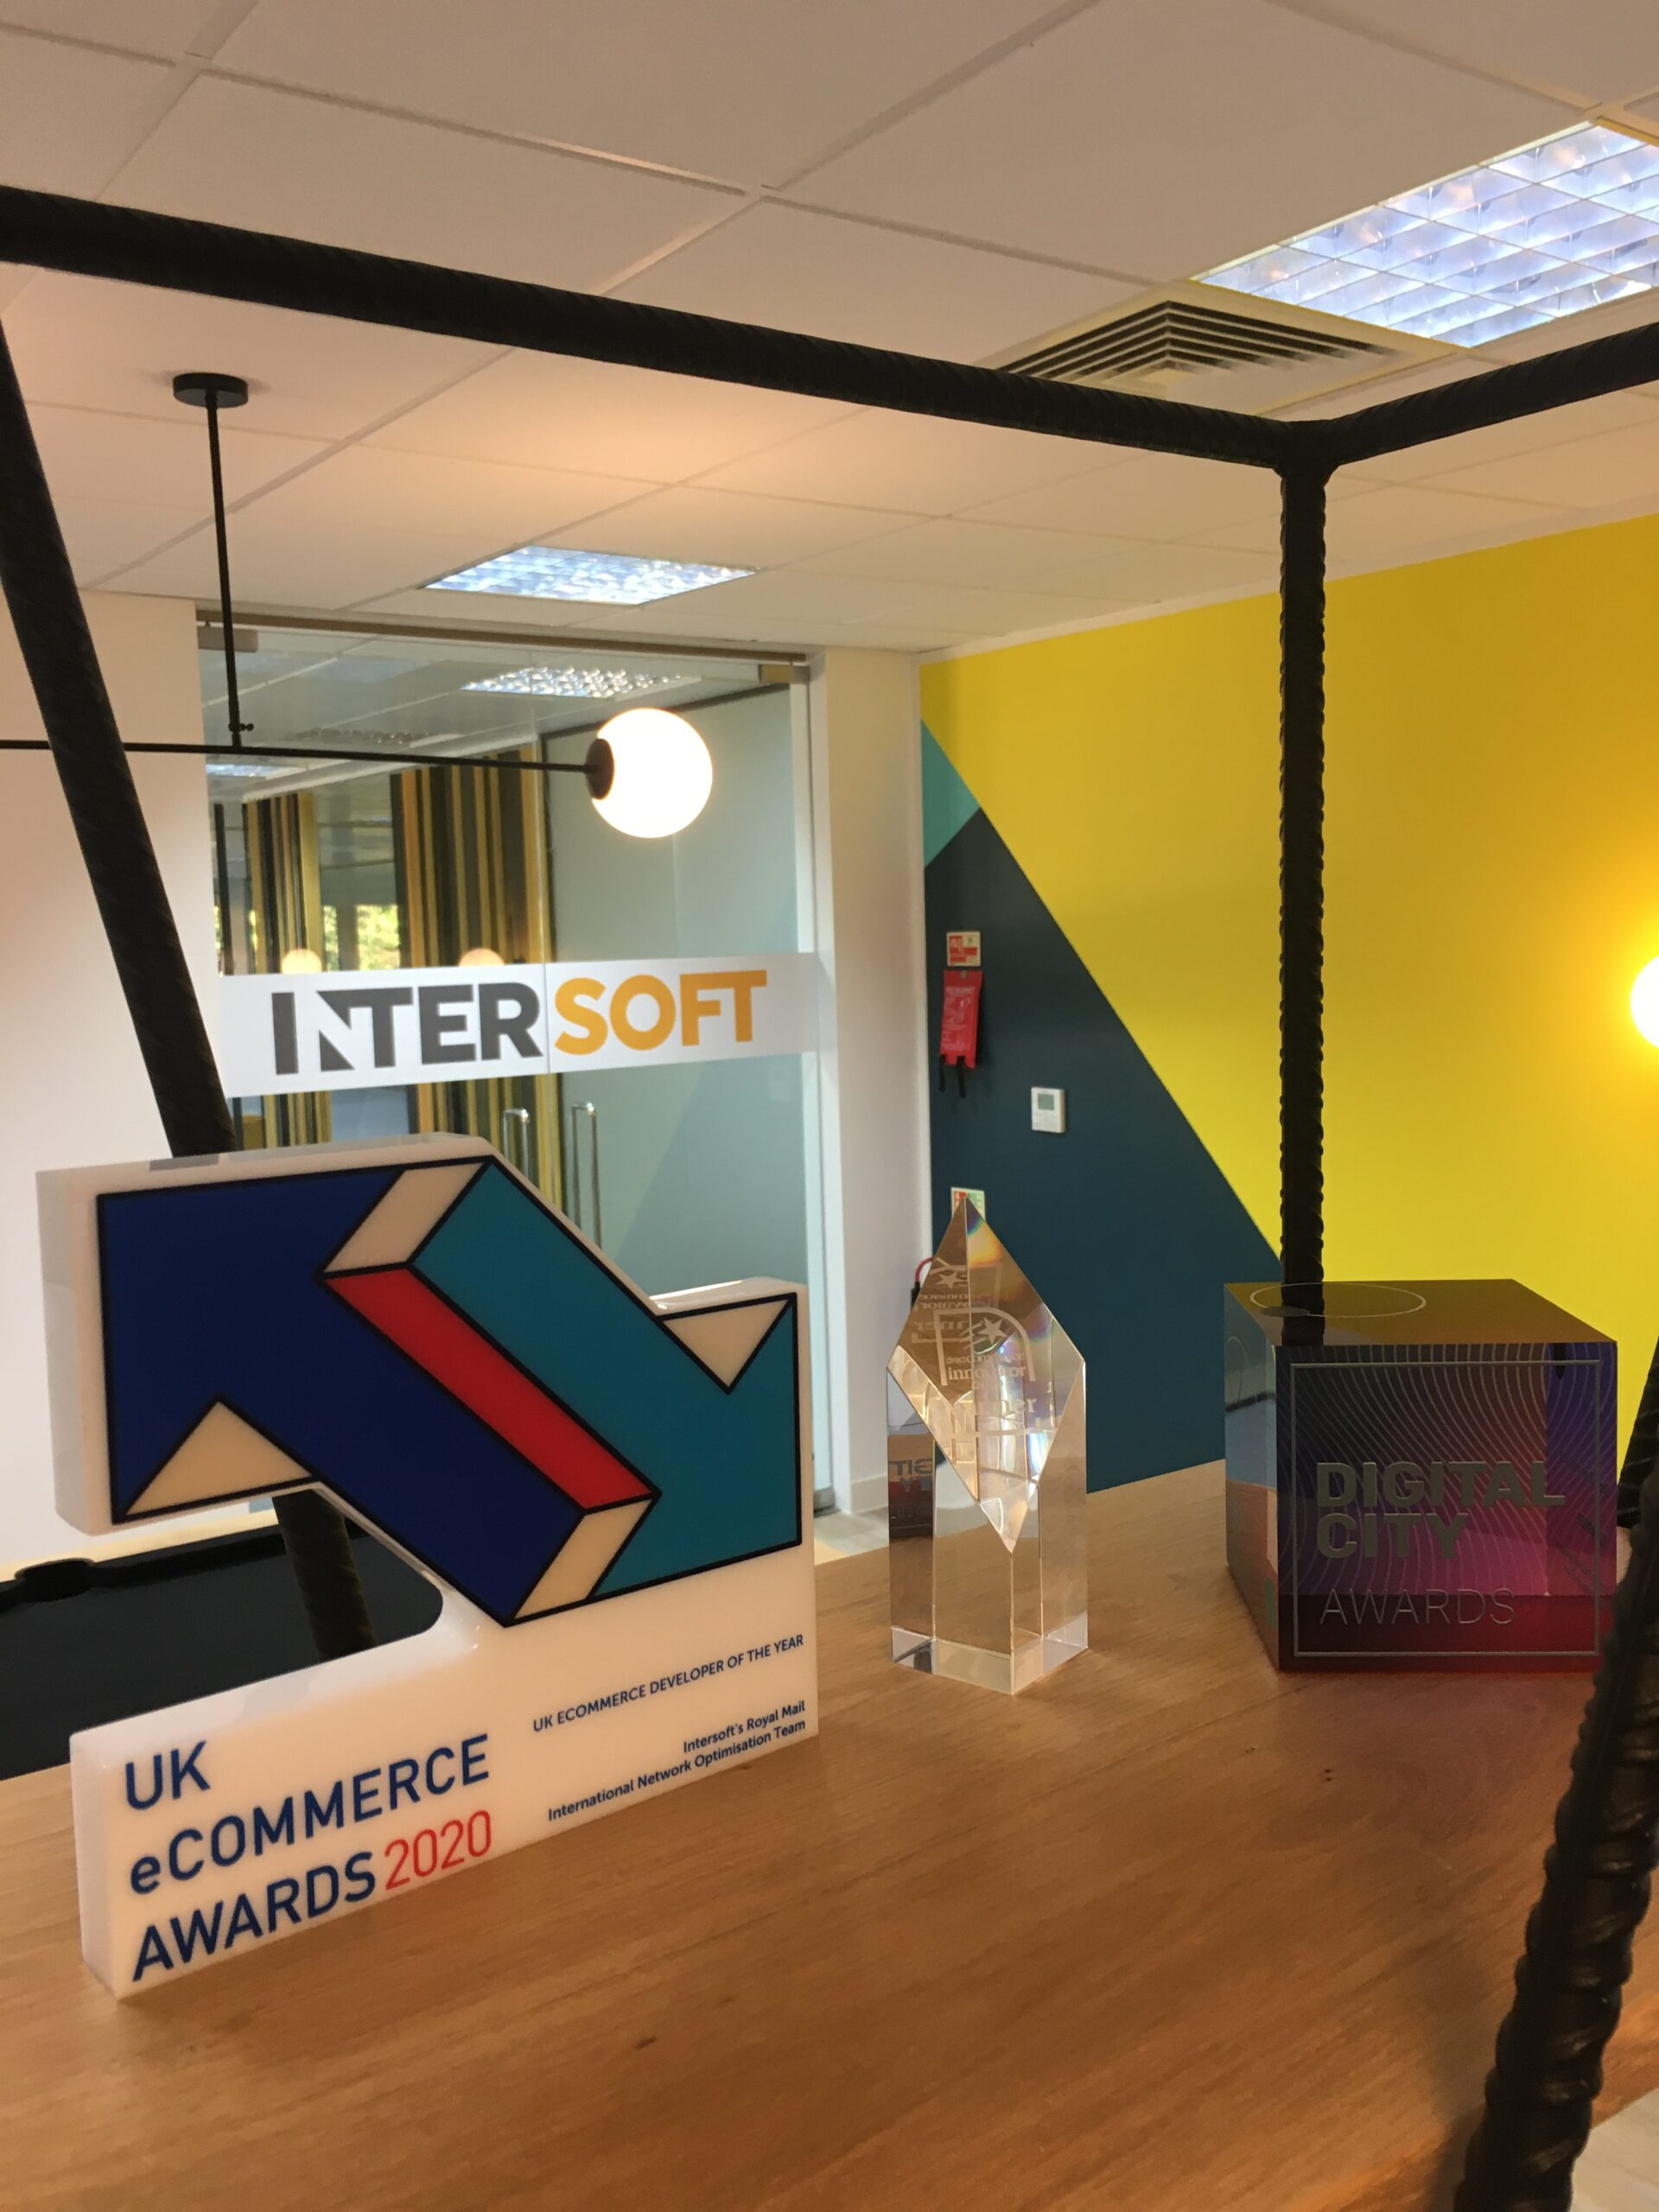 A collection of Intersoft awards